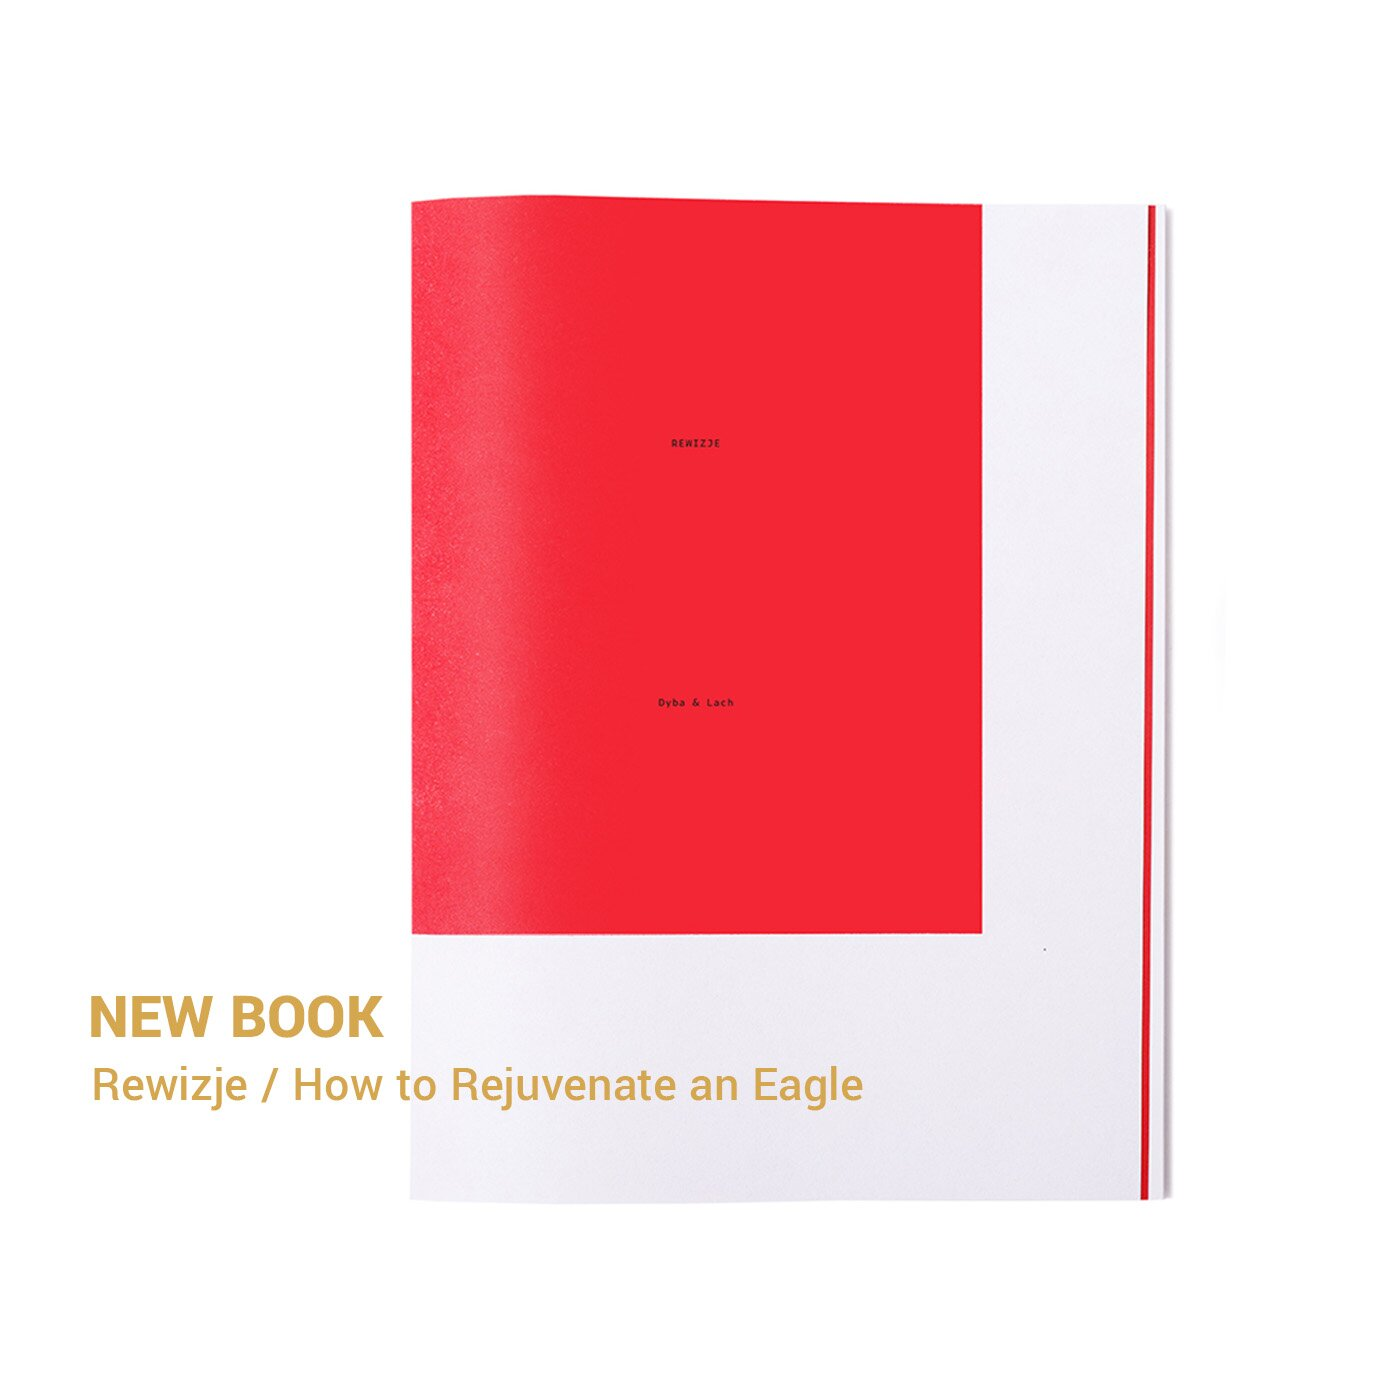 New book - How to Rejuvenate an Eagle